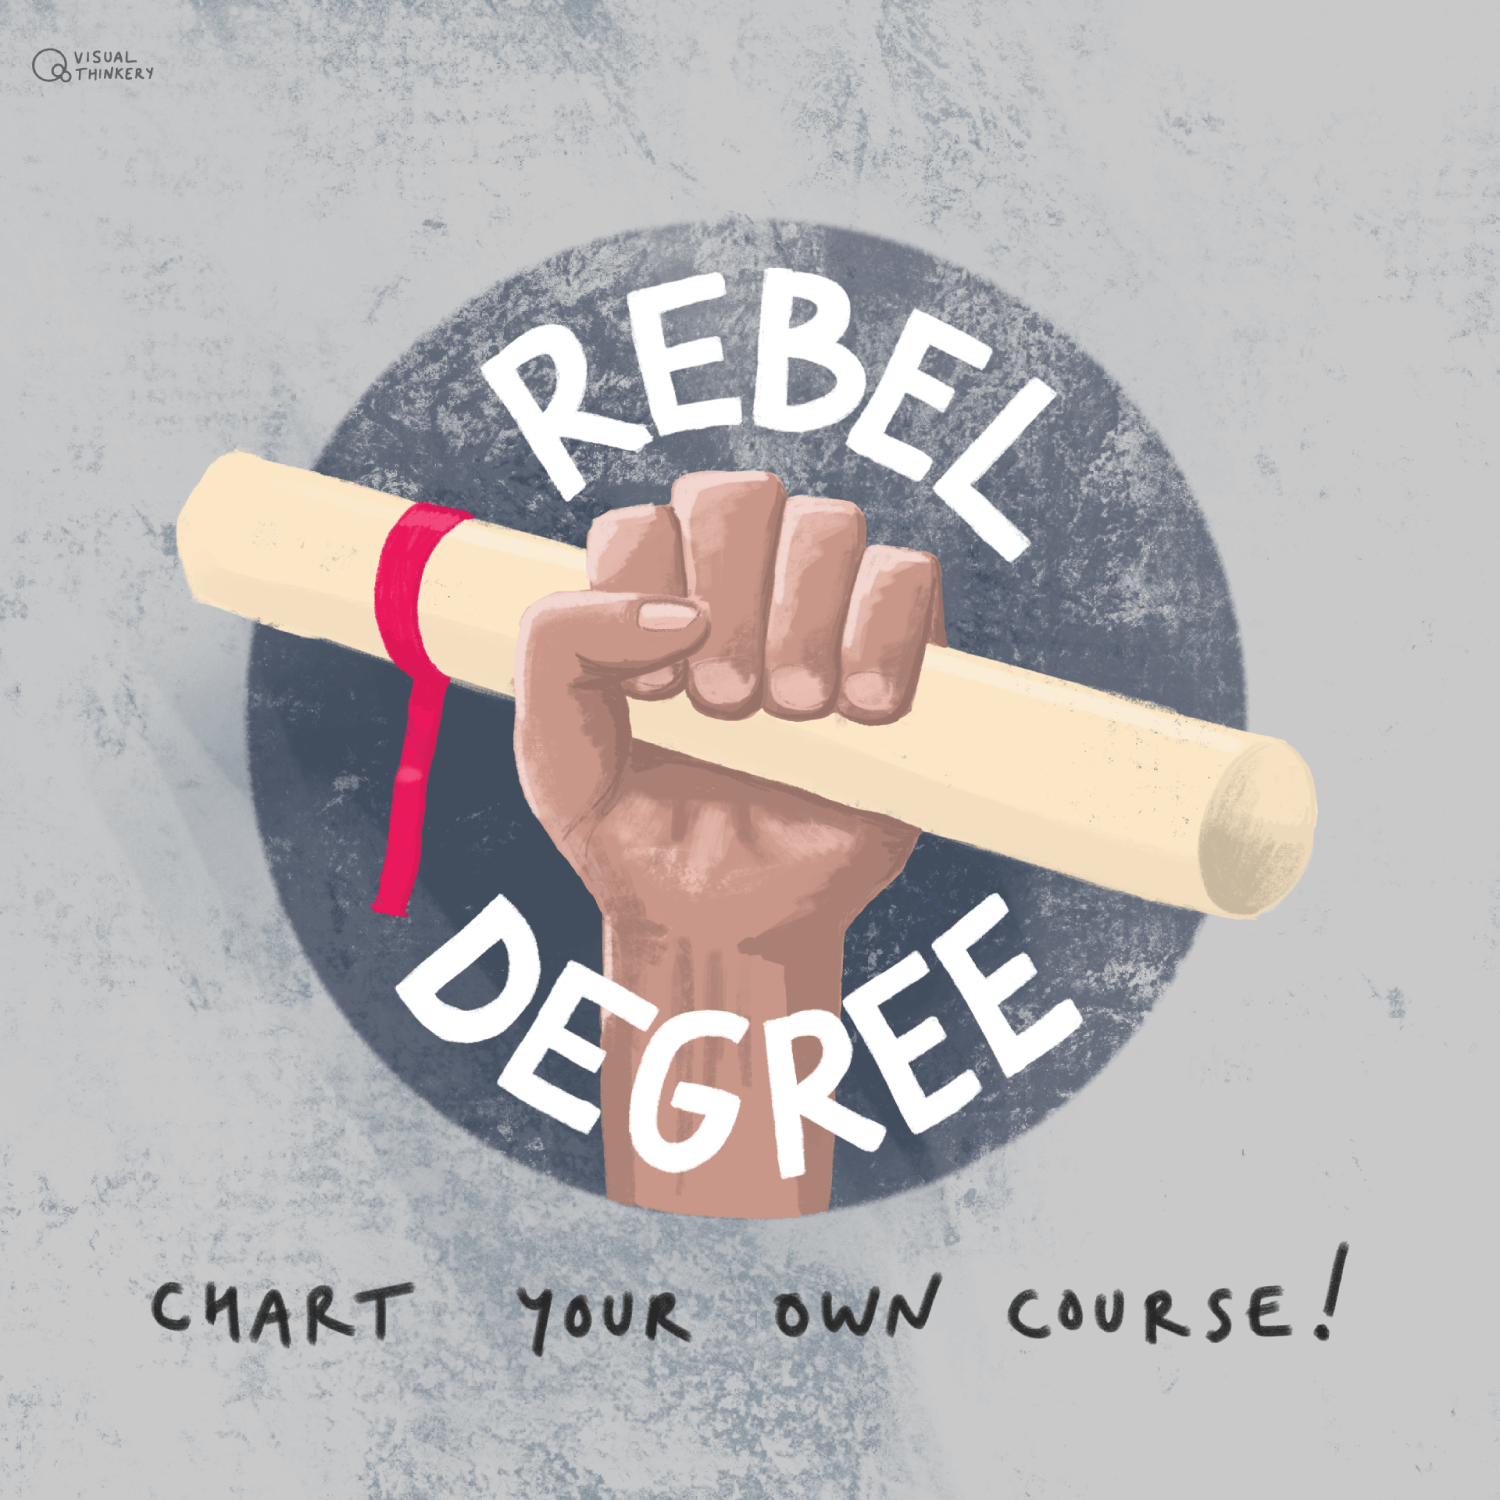 OU Open Degree - Rebel Degree